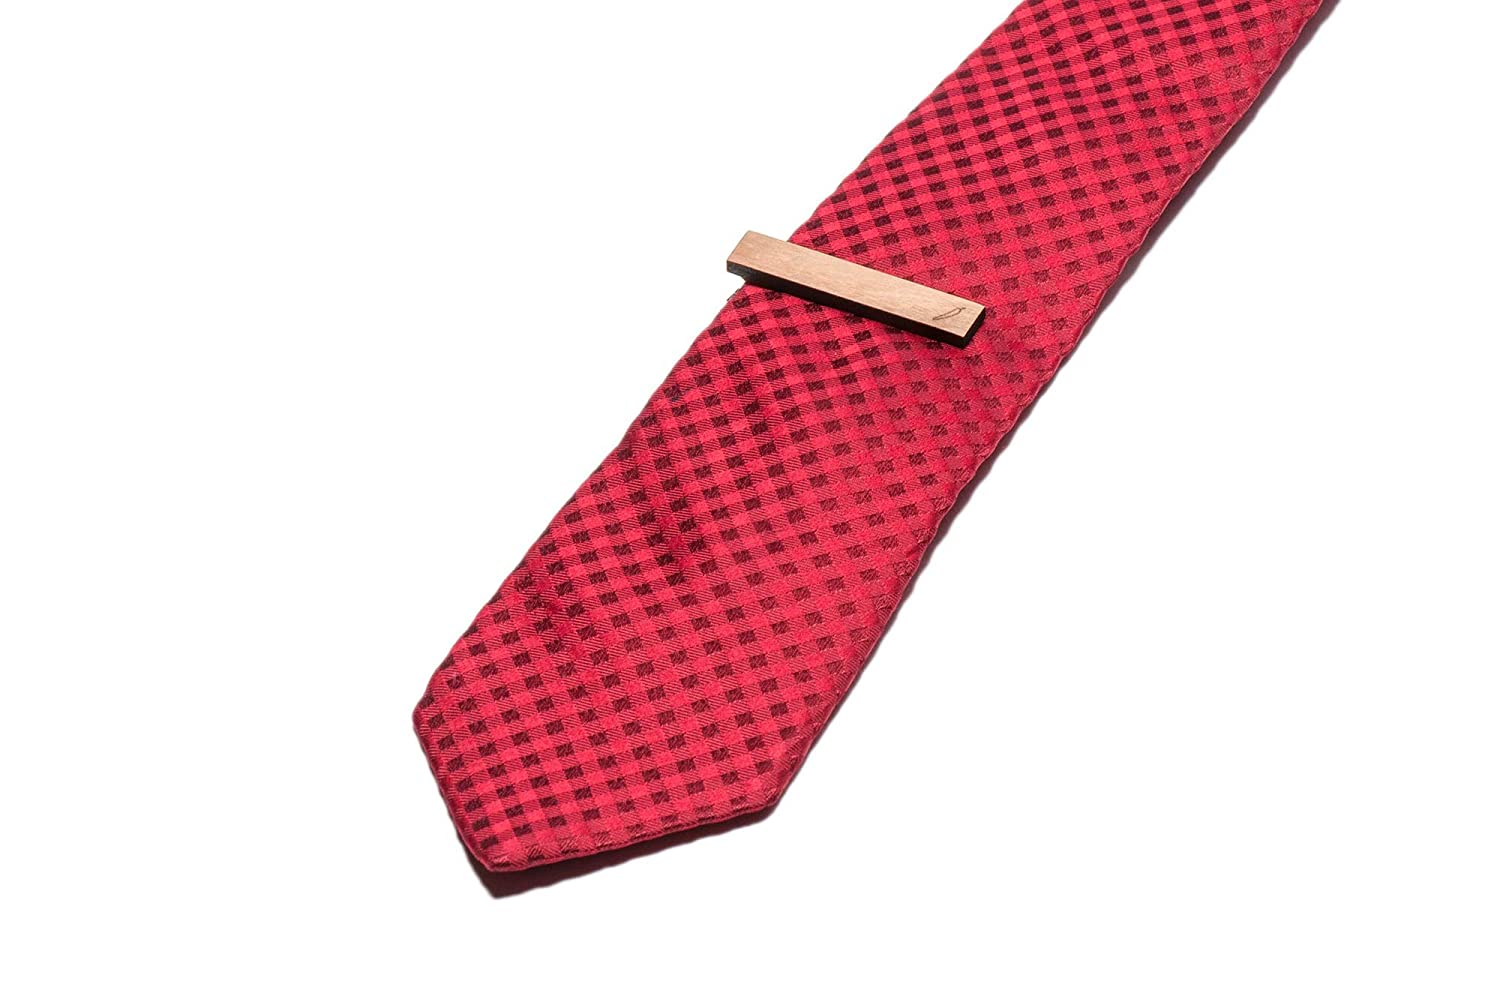 Wooden Accessories Company Wooden Tie Clips with Laser Engraved Chilli Pepper Design Cherry Wood Tie Bar Engraved in The USA